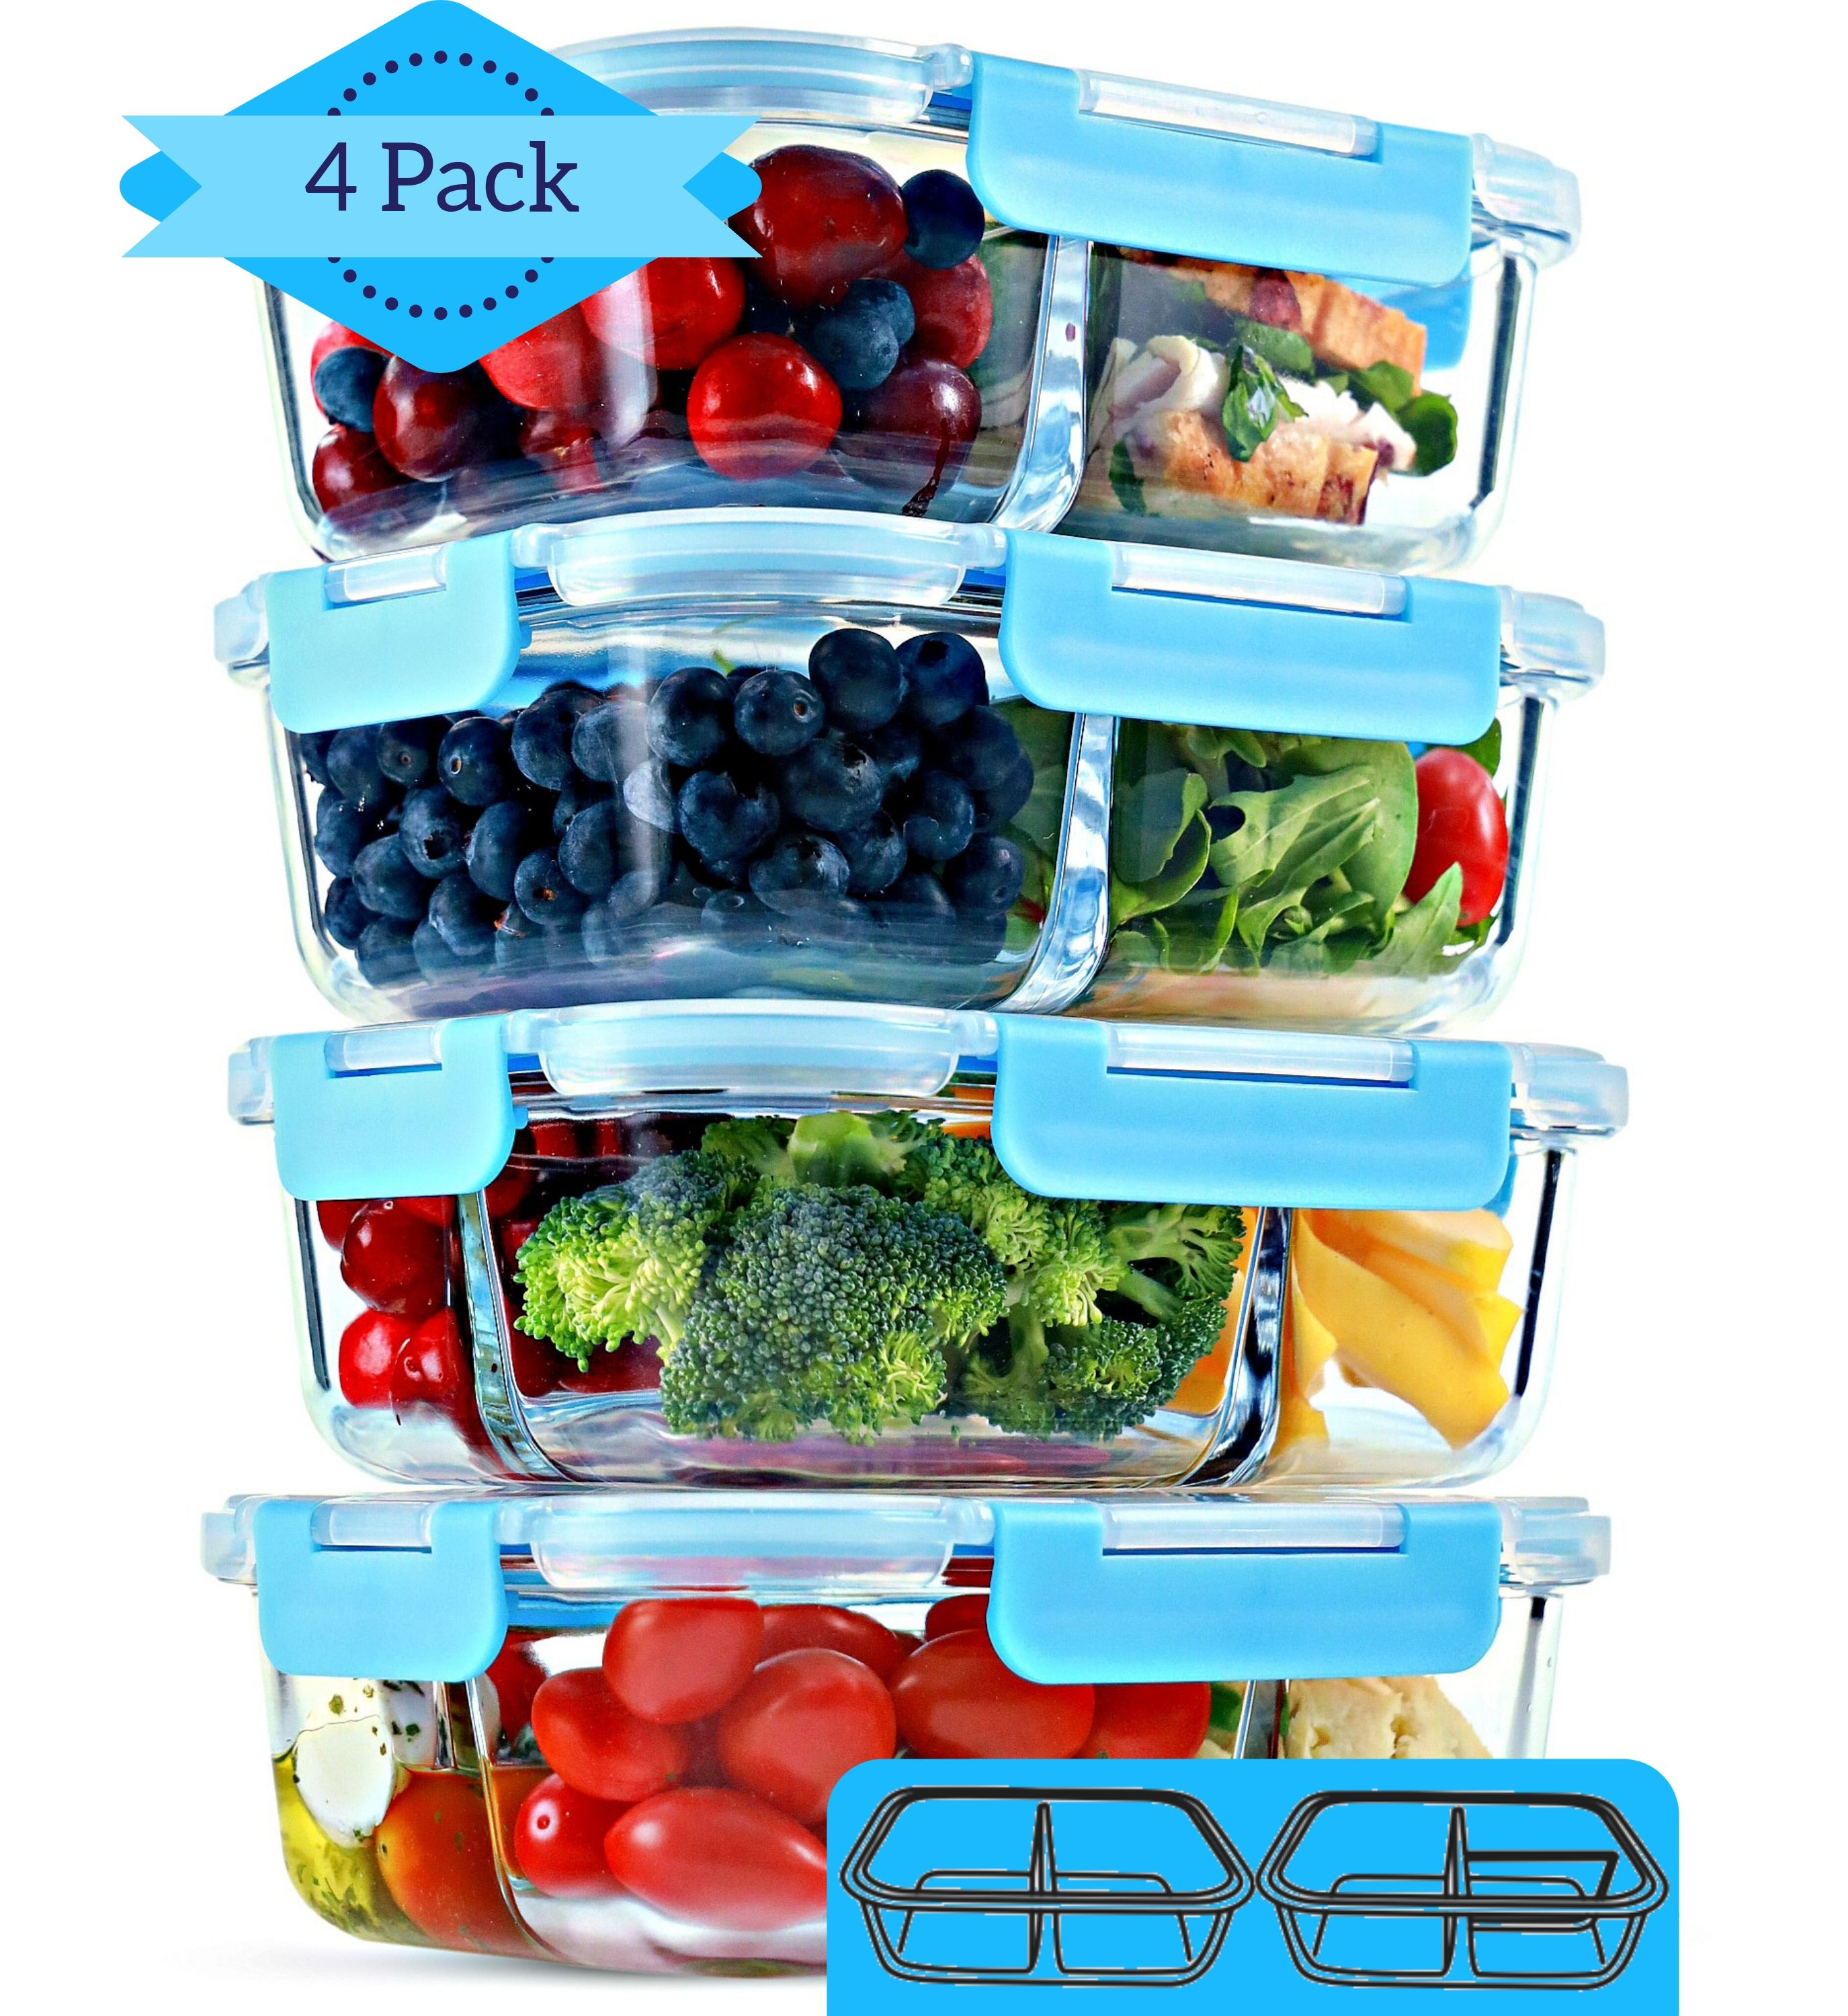 Glass Meal Prep Containers 4 Pack 30 Oz 2 3 Compartment Food Storage Containers With Lids Bpa Free Food Prep Containers Bento Box Lunch Box Portion Control Airtight Walmart Com Walmart Com